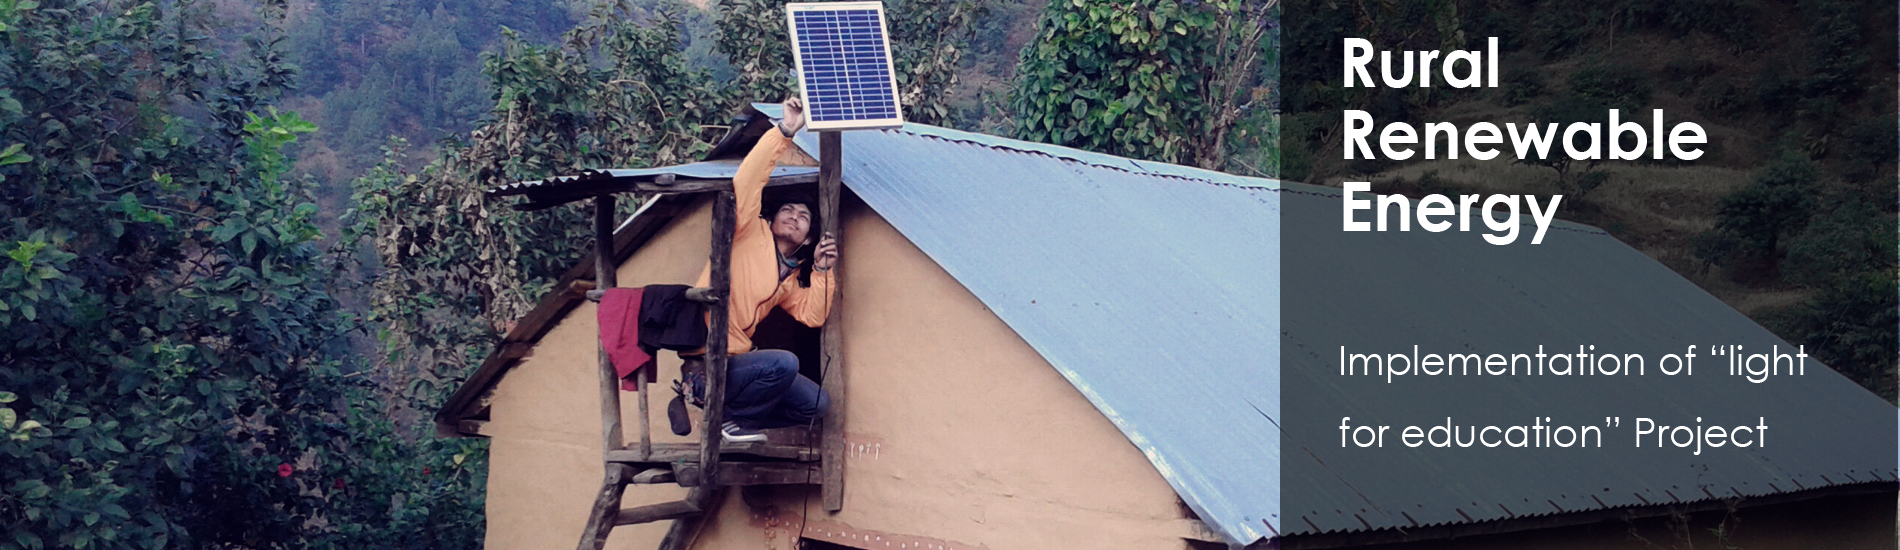 Solar PV Home: Featured